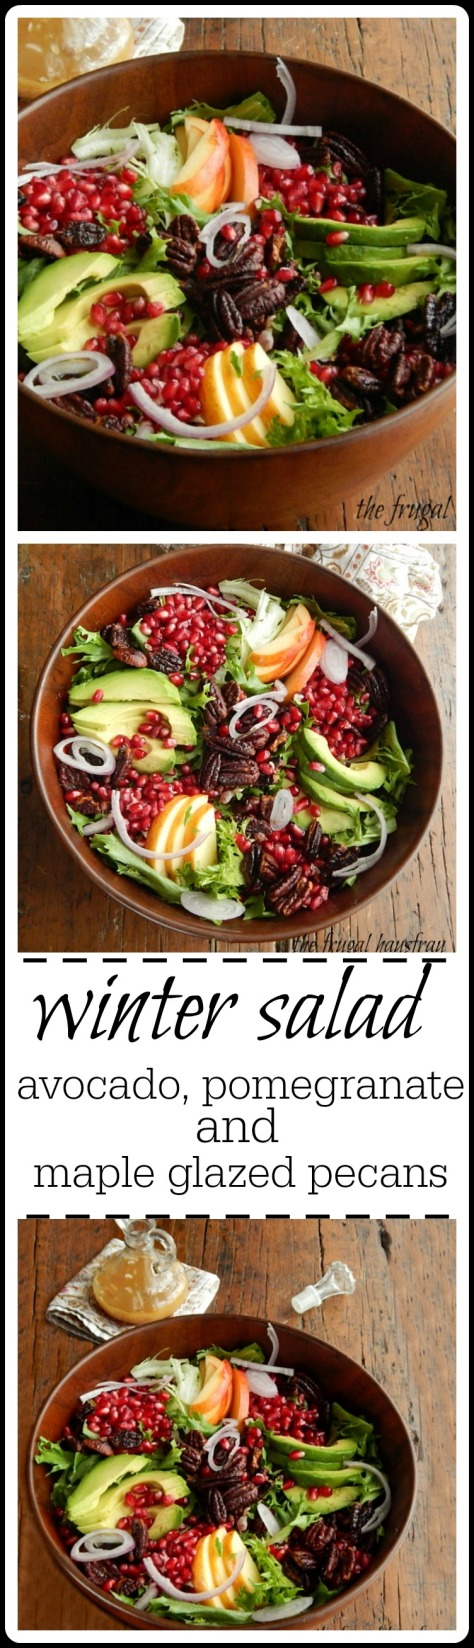 This Winter Salad is stuffed with everything good - but don't save it for a Holiday - it's just too good for that!